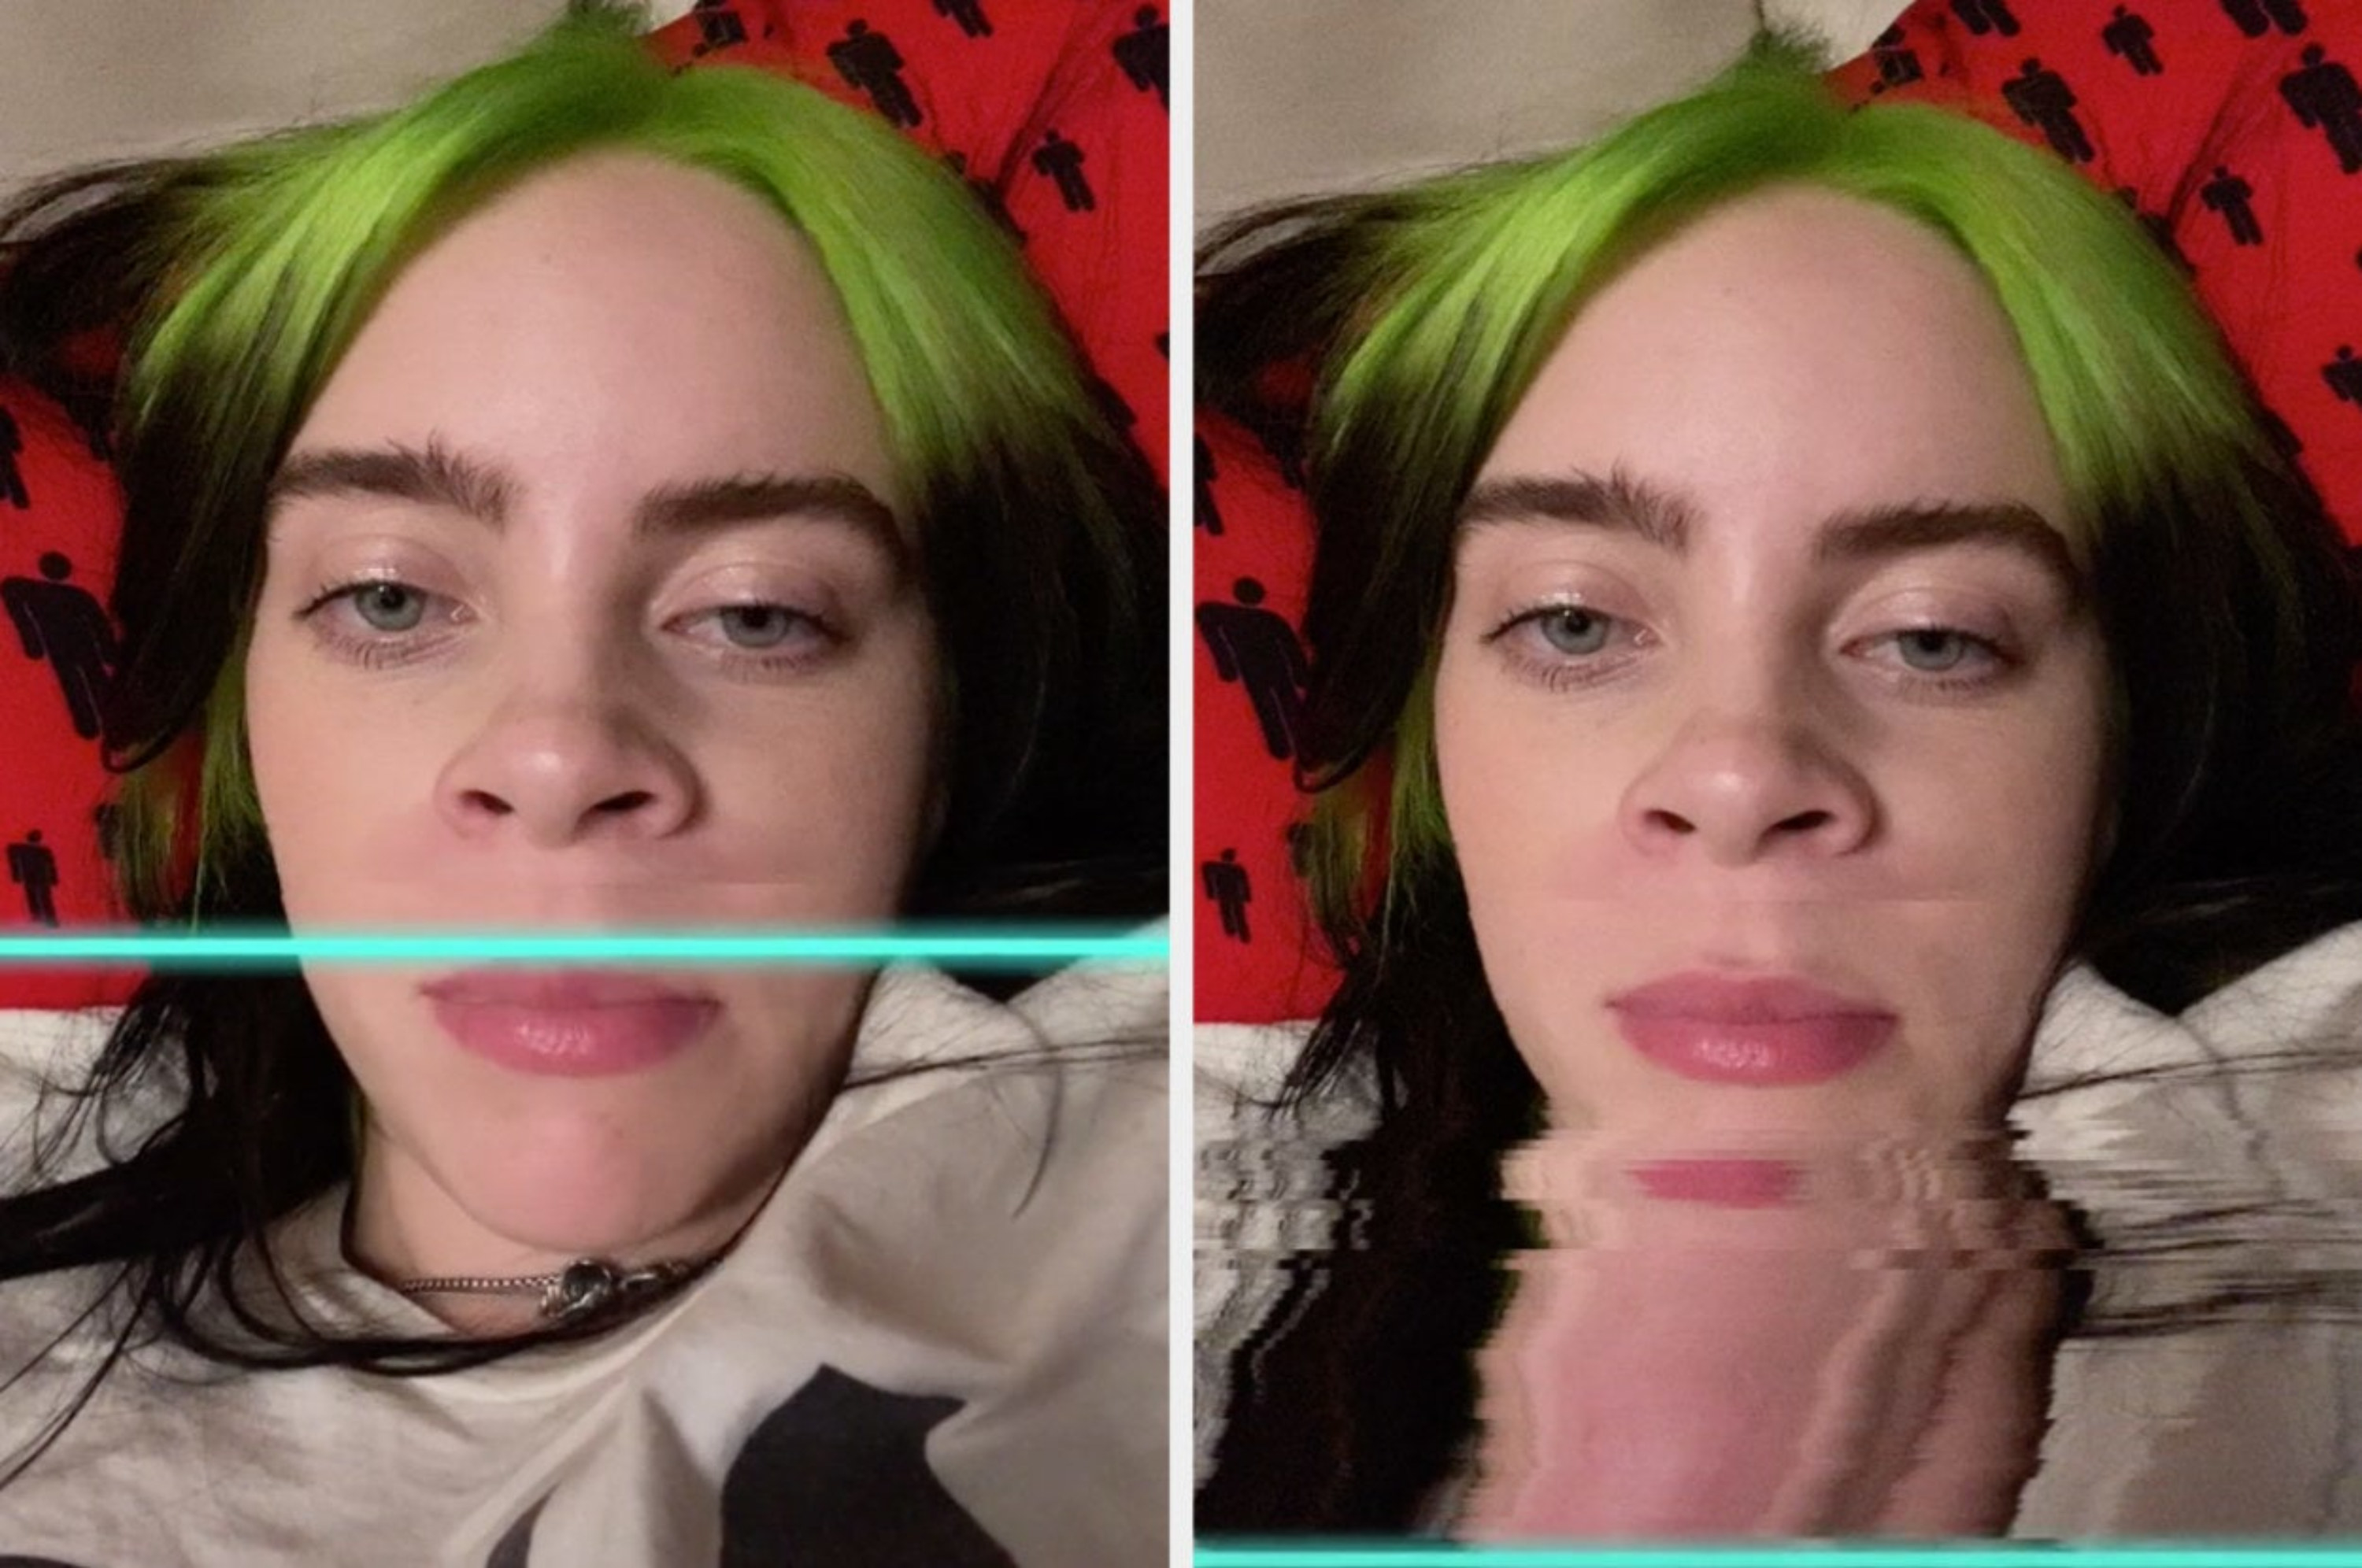 Billie uses the effect and laughs at her new nose, which looks dramatically different than her original nose